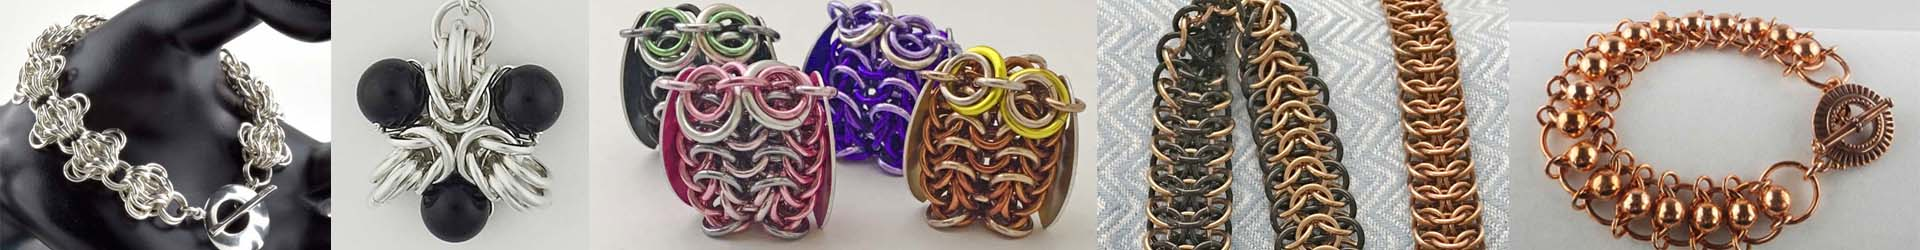 Discovering: Chainmaille